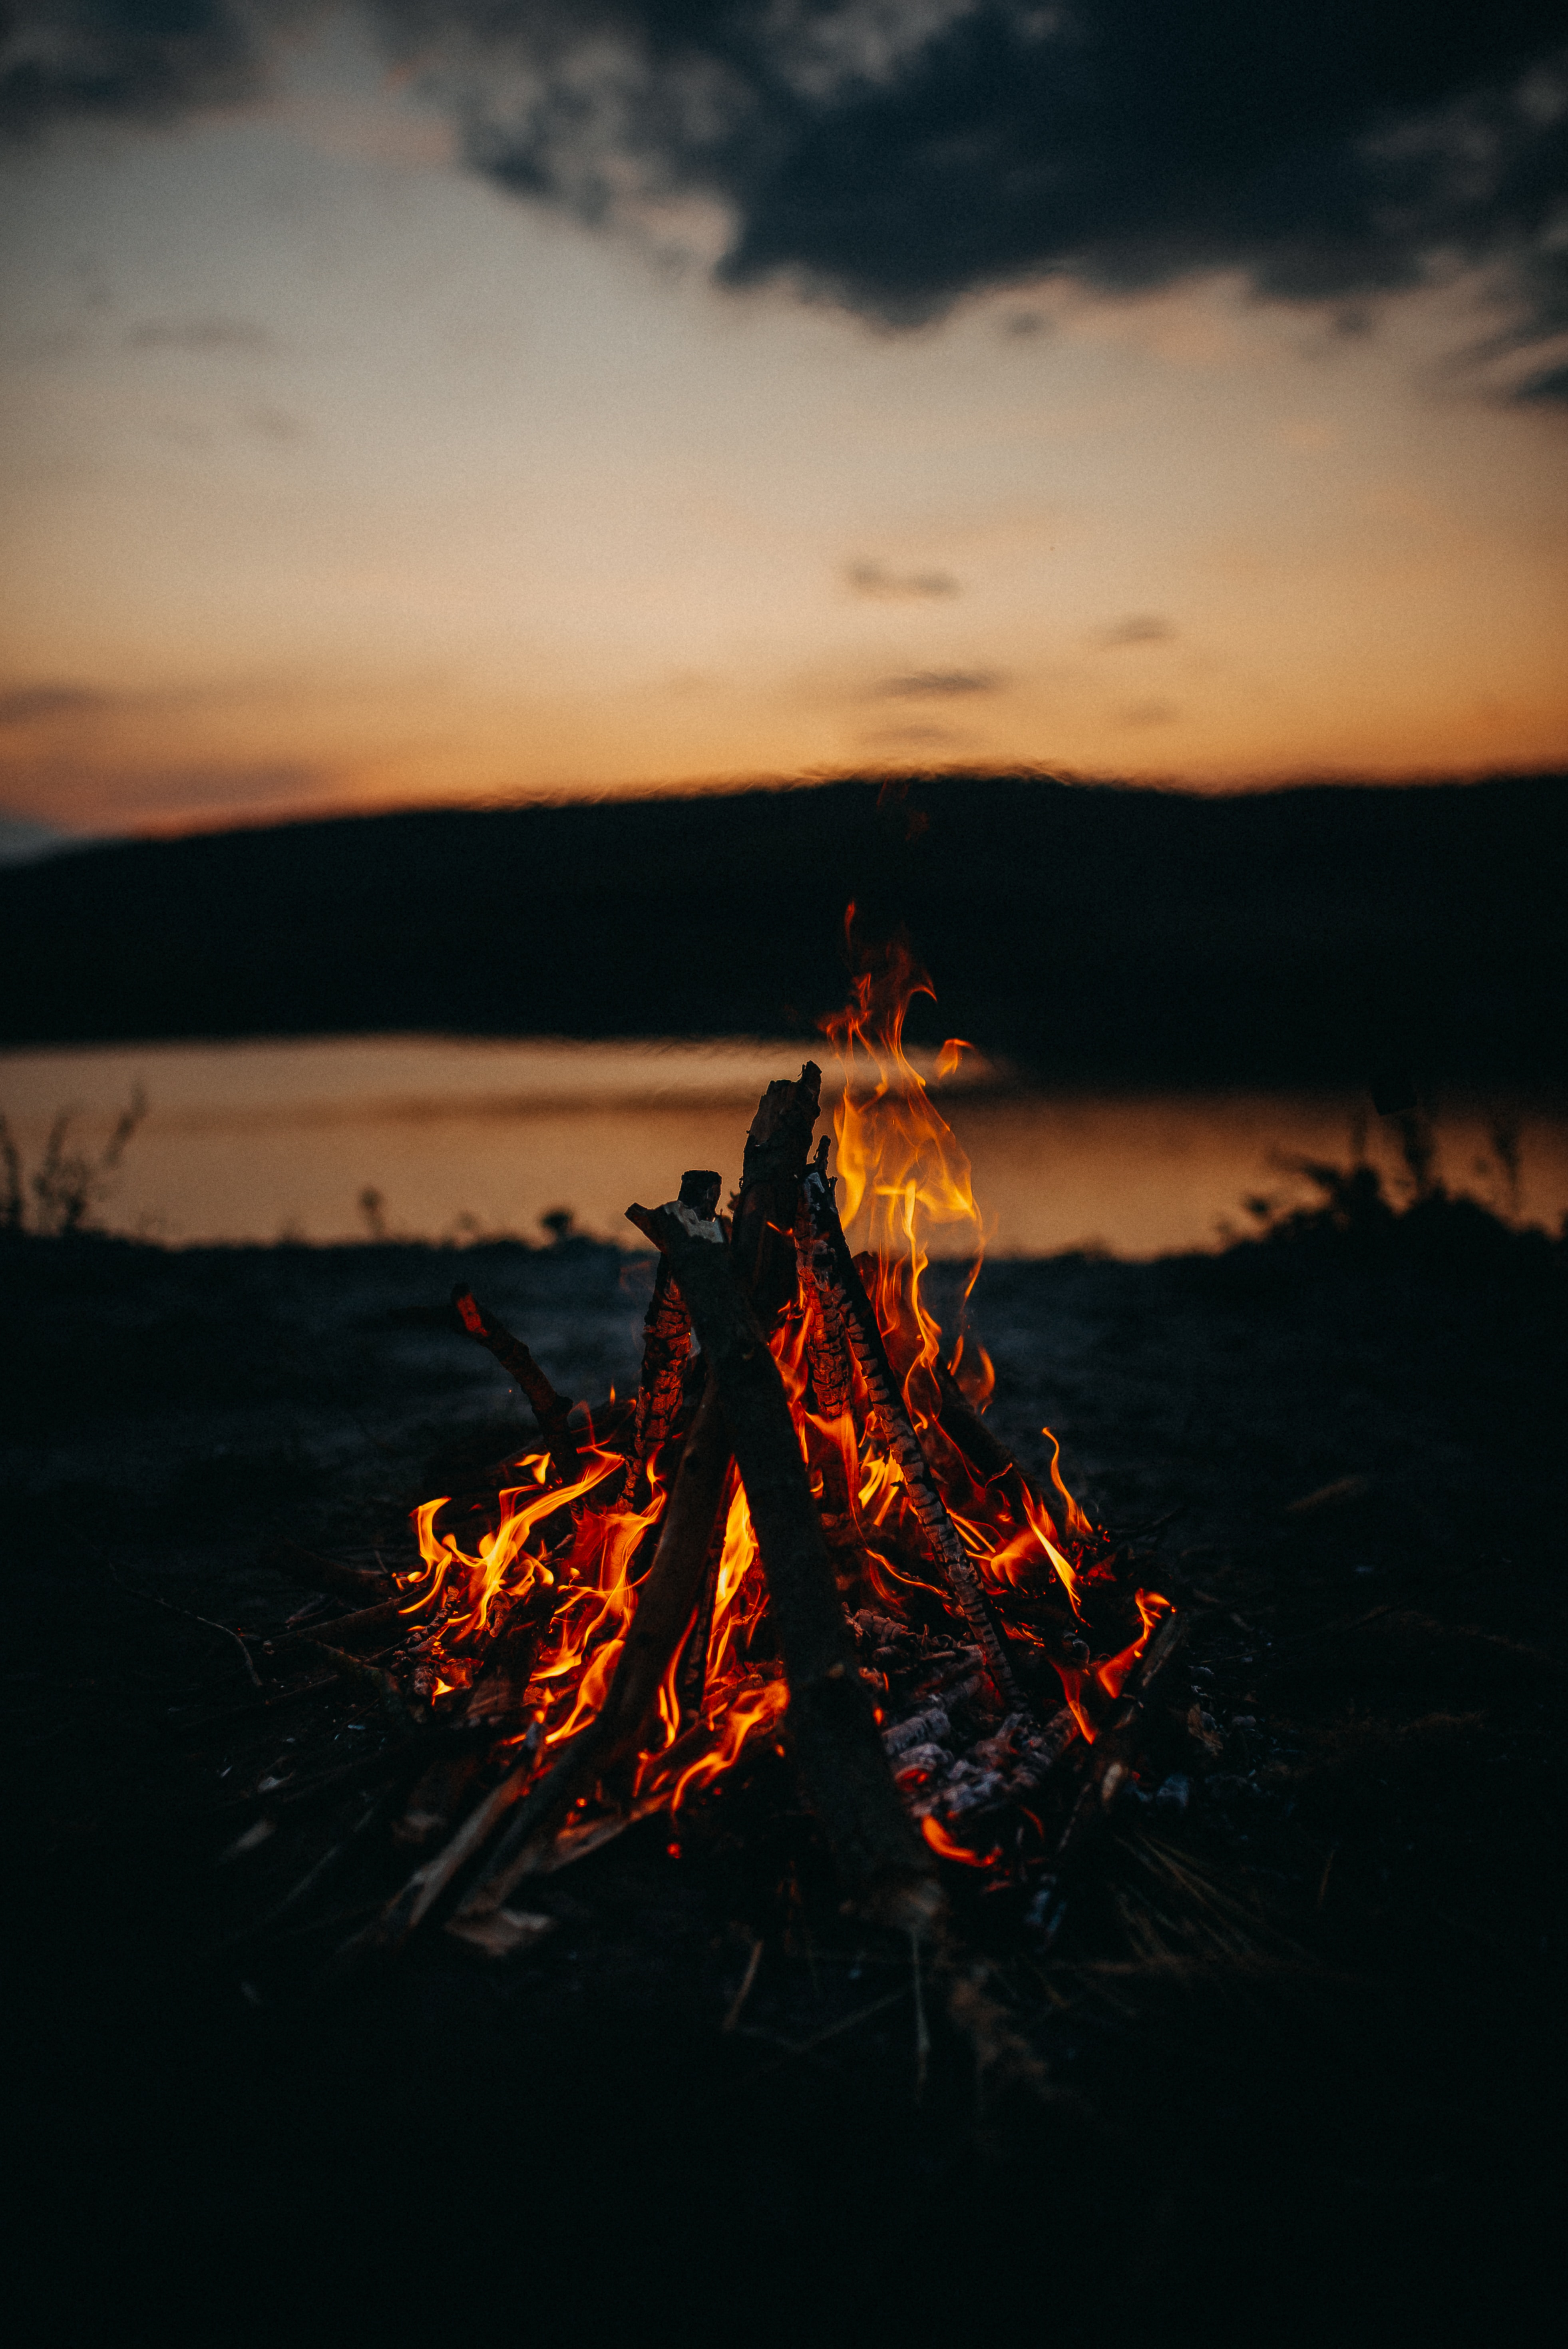 157460 Screensavers and Wallpapers Bonfire for phone. Download Twilight, Fire, Bonfire, Dark, Flame, Dusk pictures for free